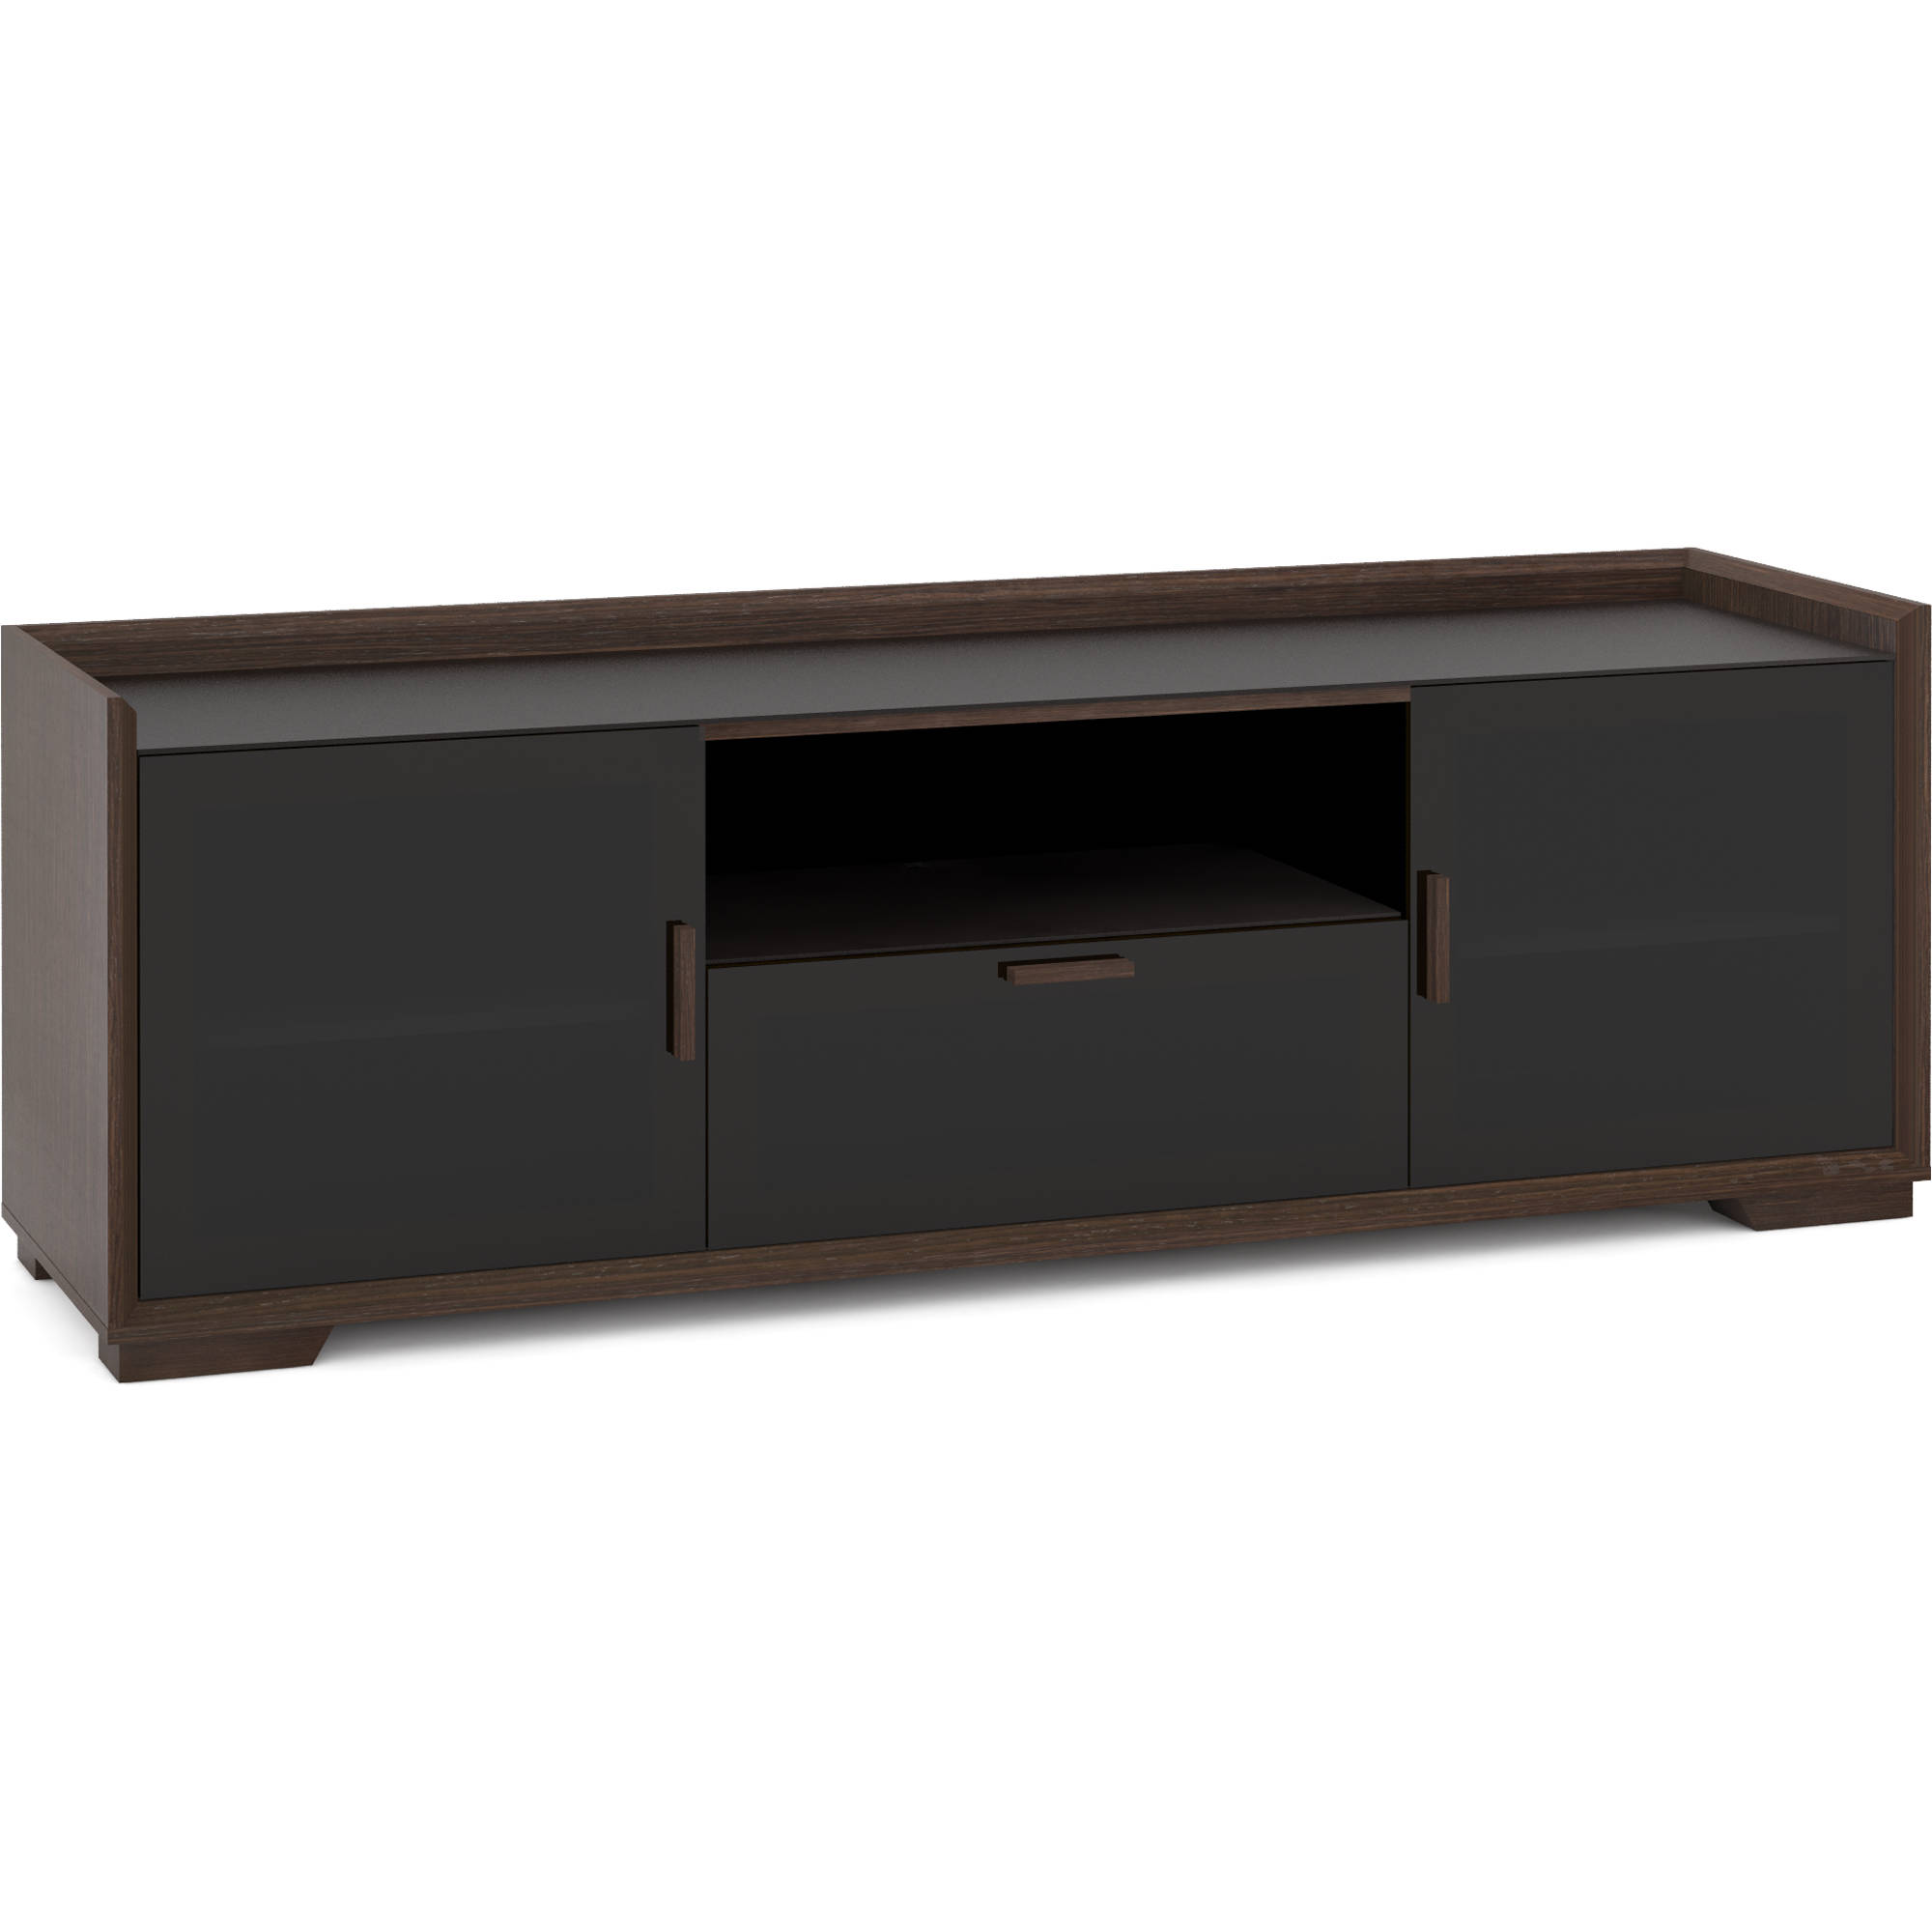 Audiovideo Cabinet In Wenge Espresso With Black Glass Doors 72 X 24 X 20